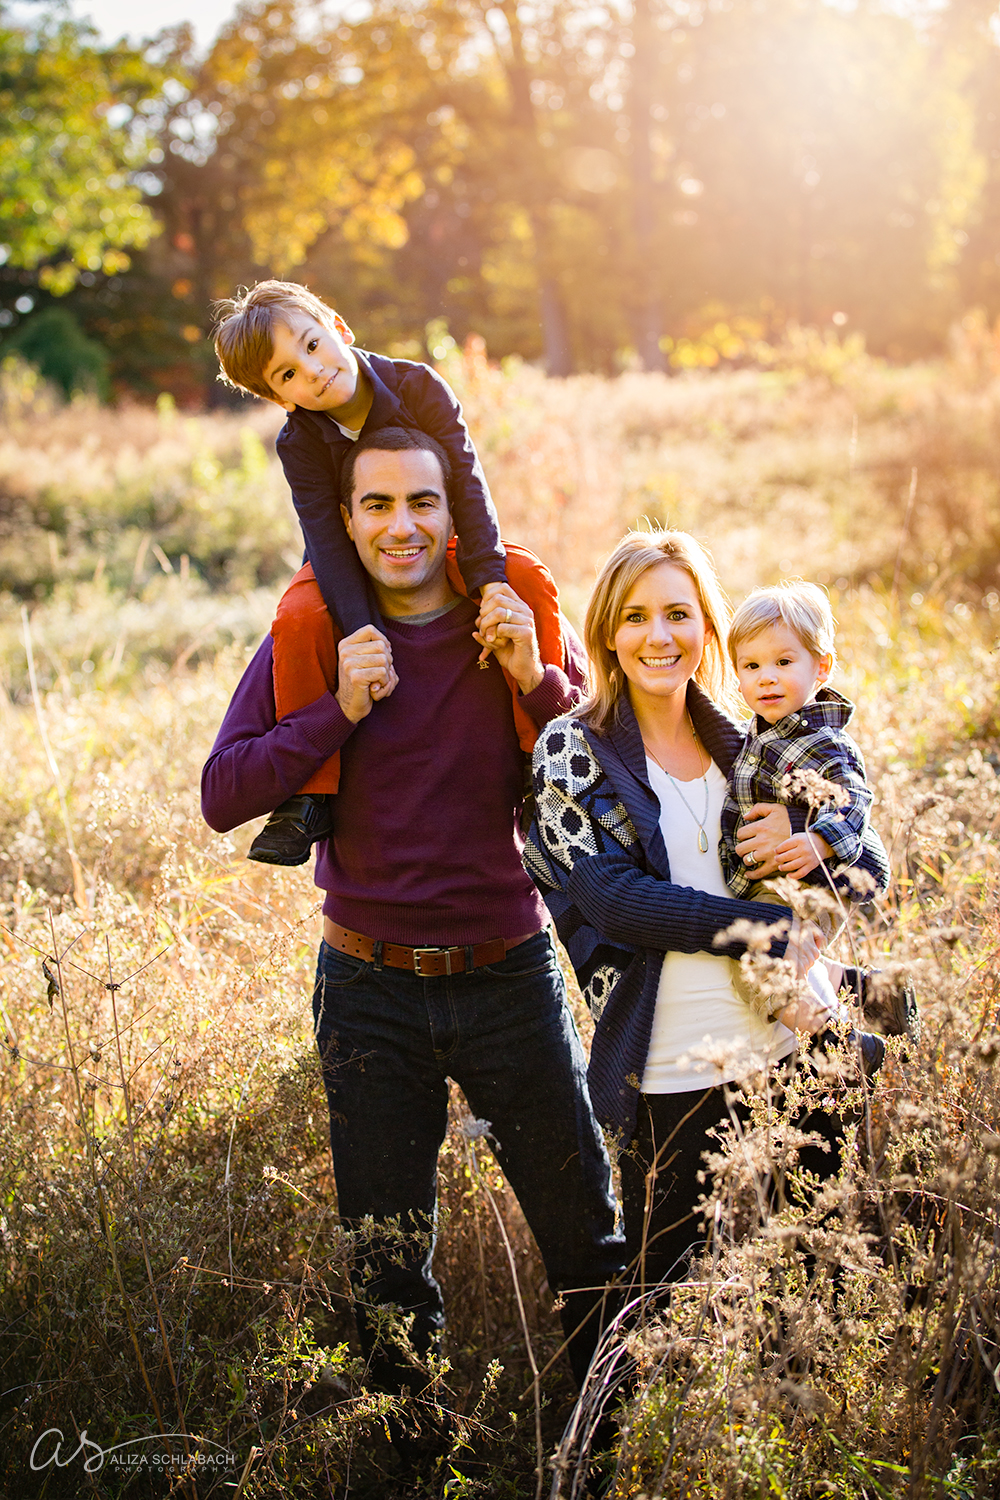 Family fall photo with boy on dad's shoulder's in the field at sunset